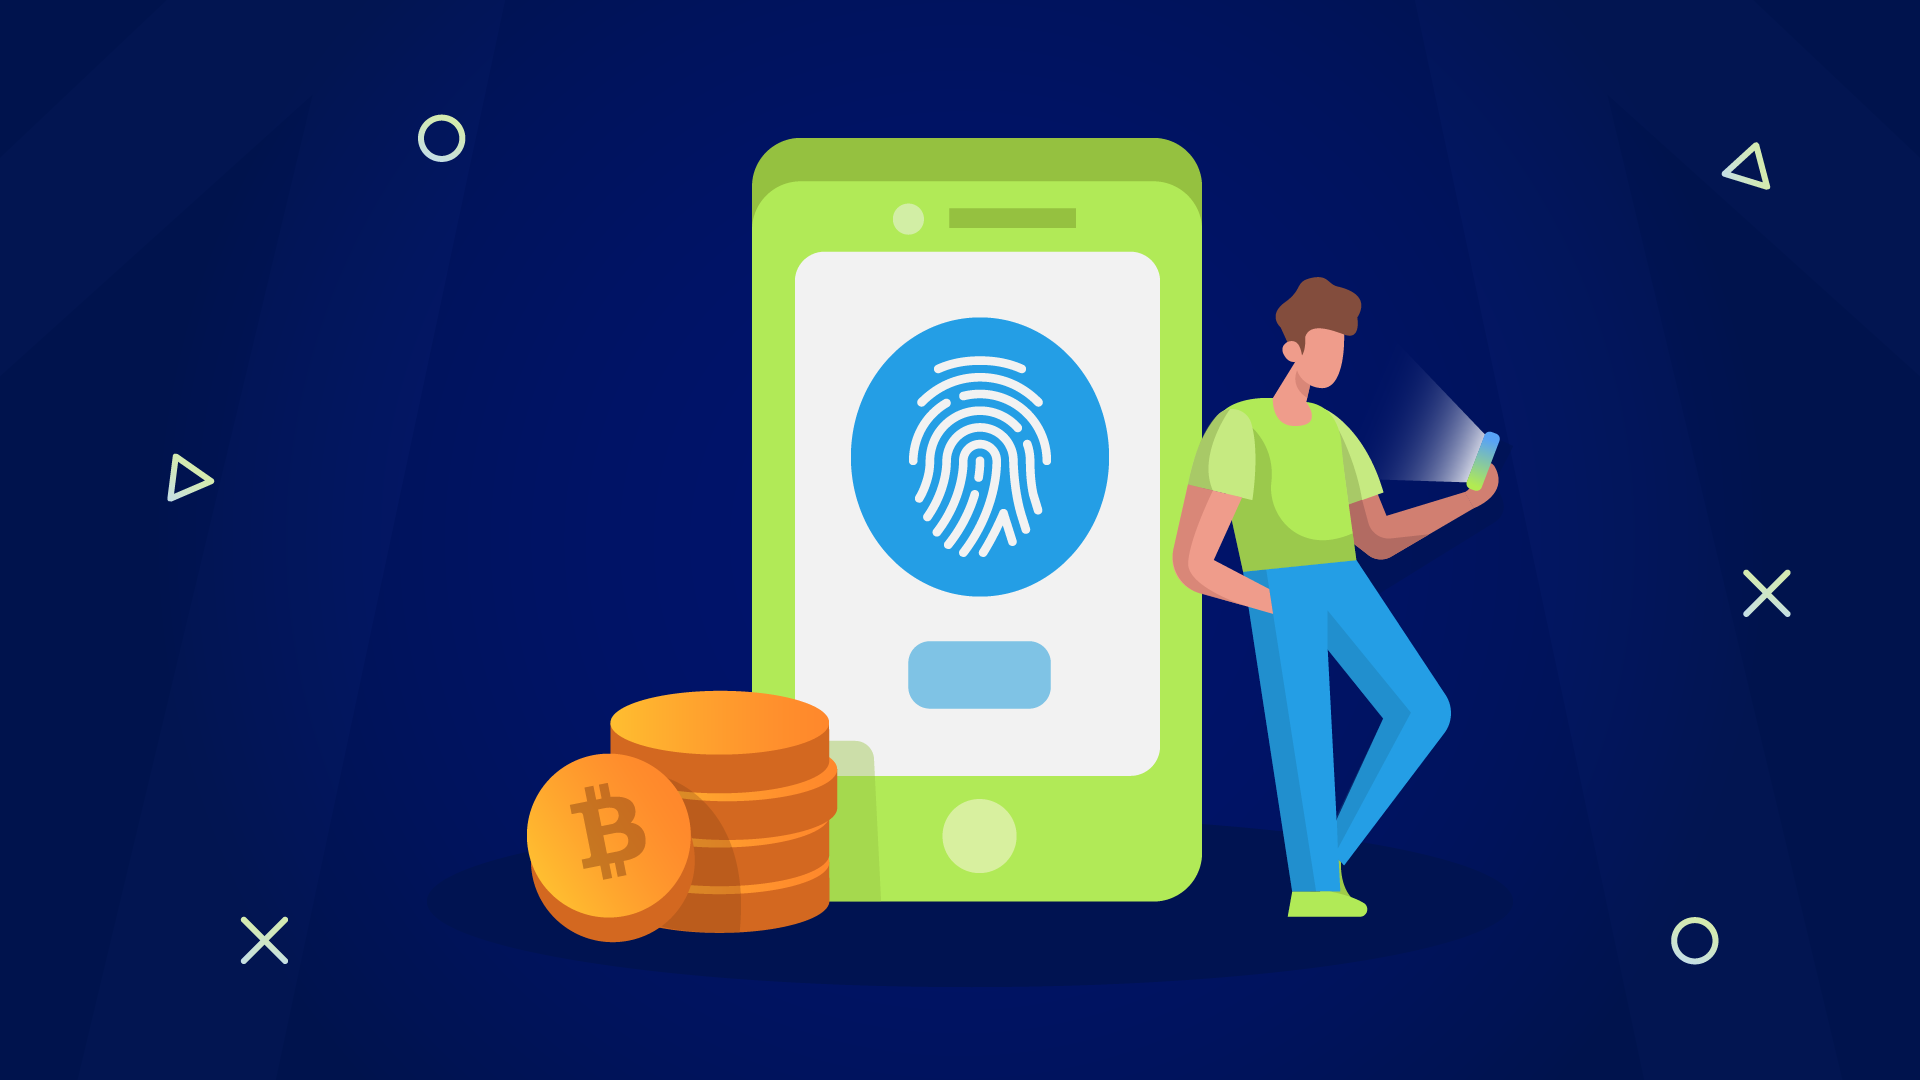 How to Purchase Cryptocurrencies without KYC?